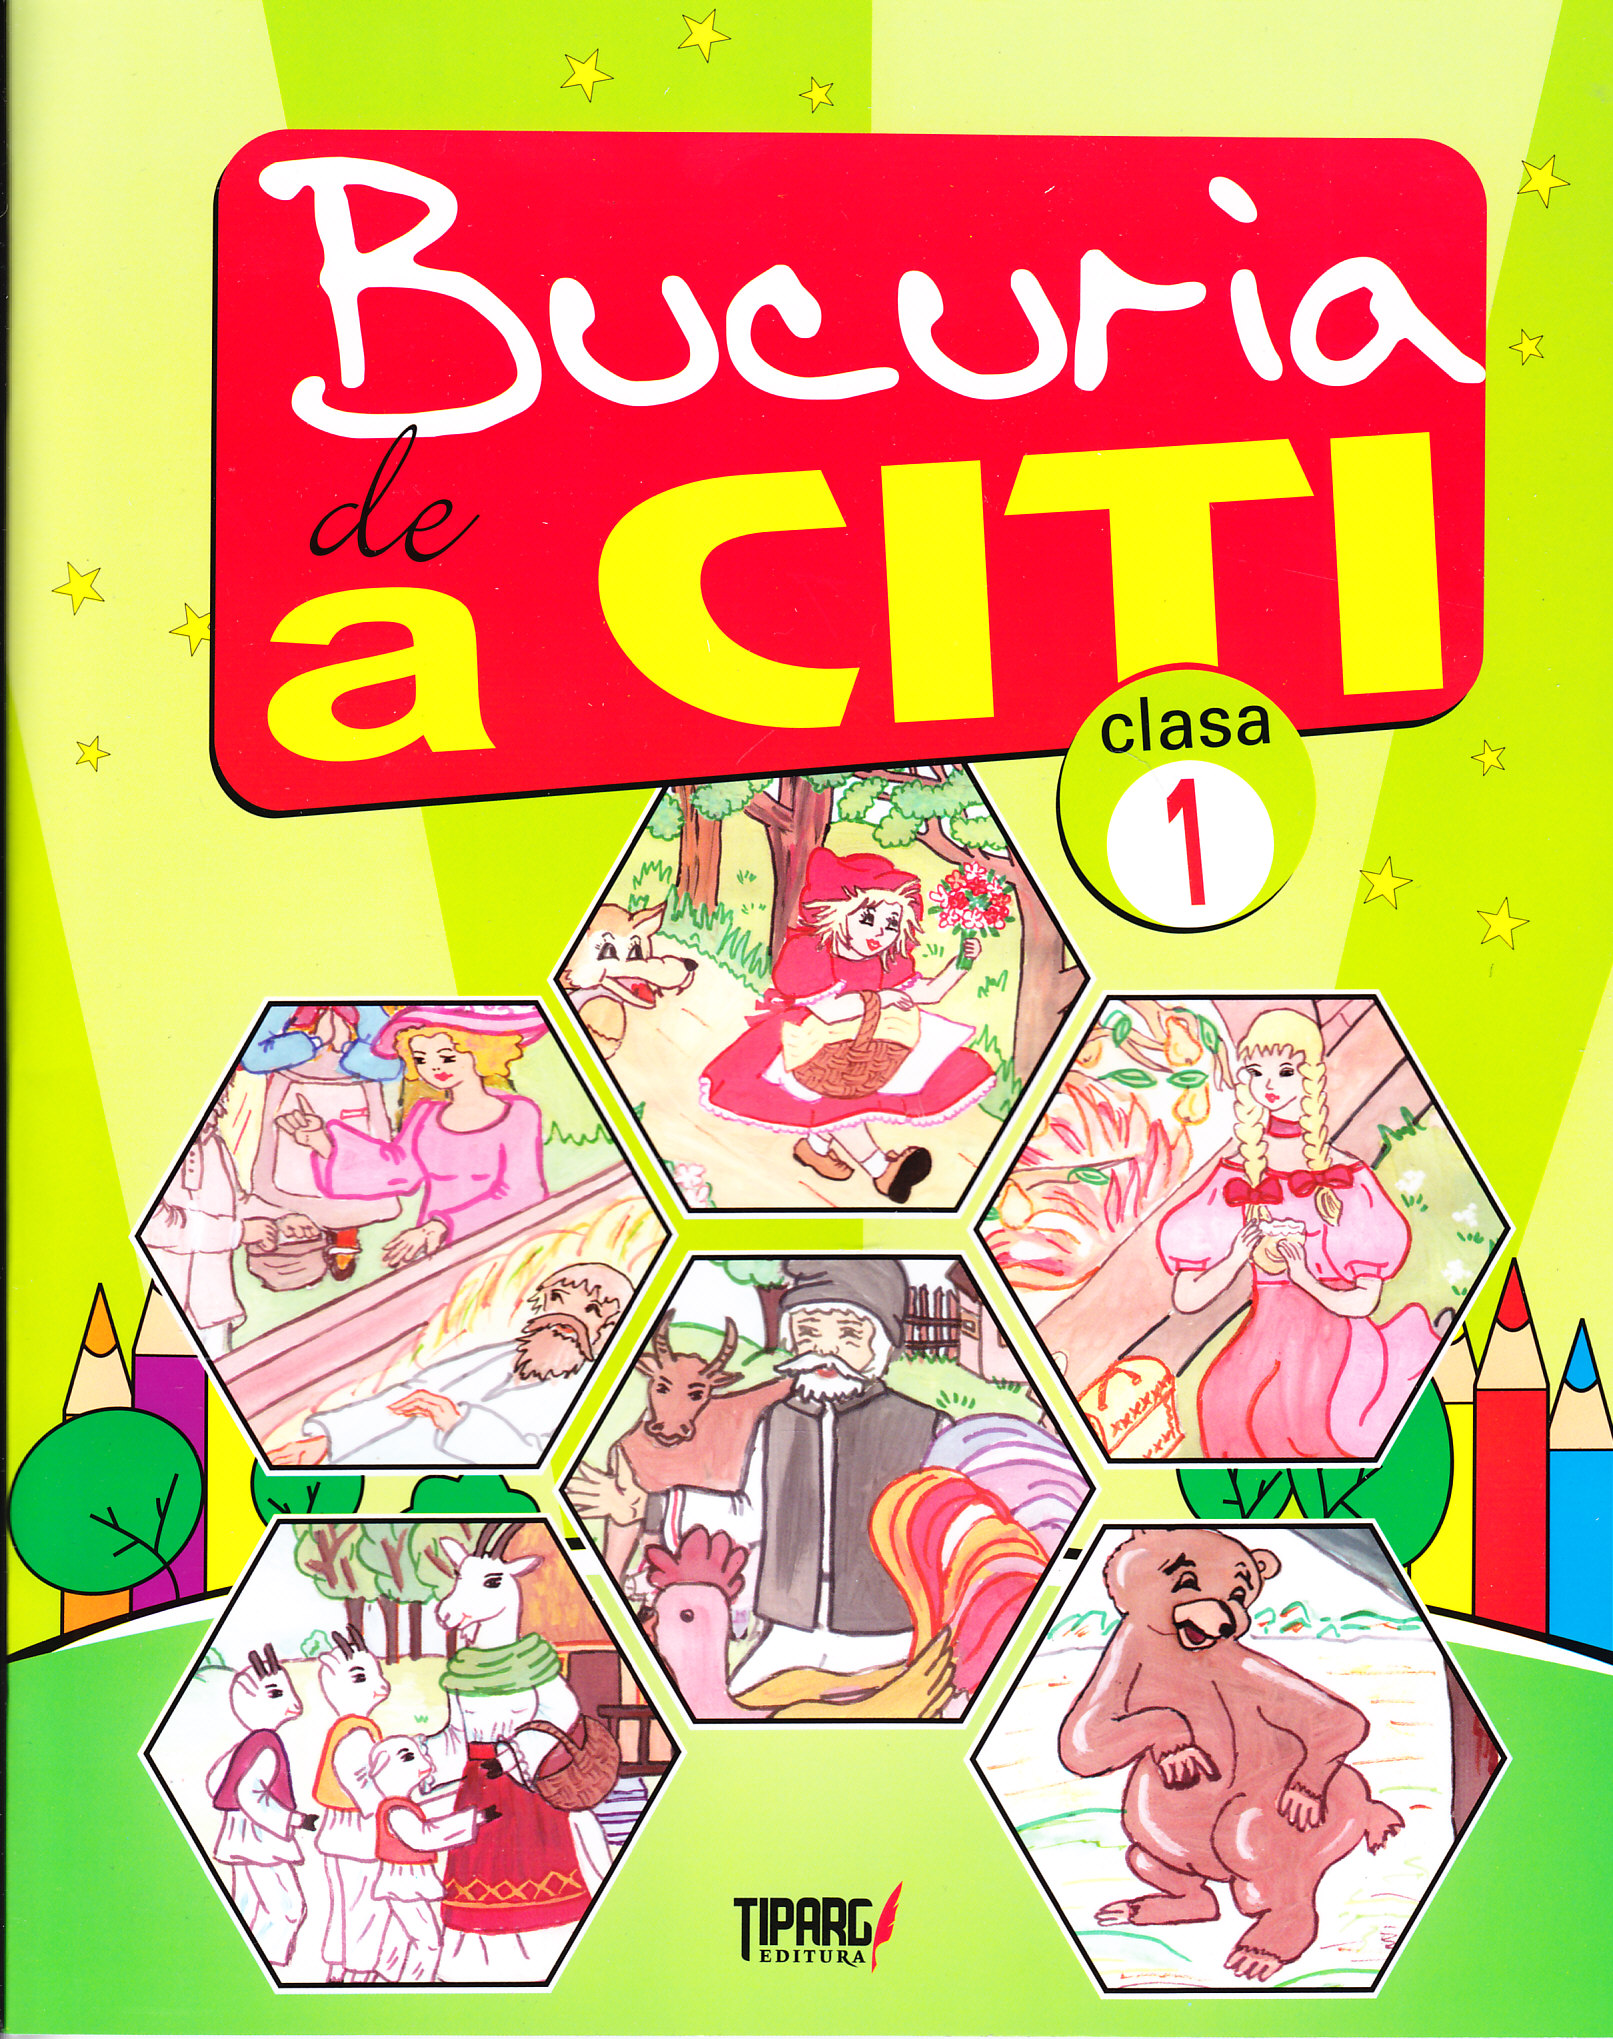 Bucuria de a citi cls 1 - Marinela Chriac, Doina Burtila